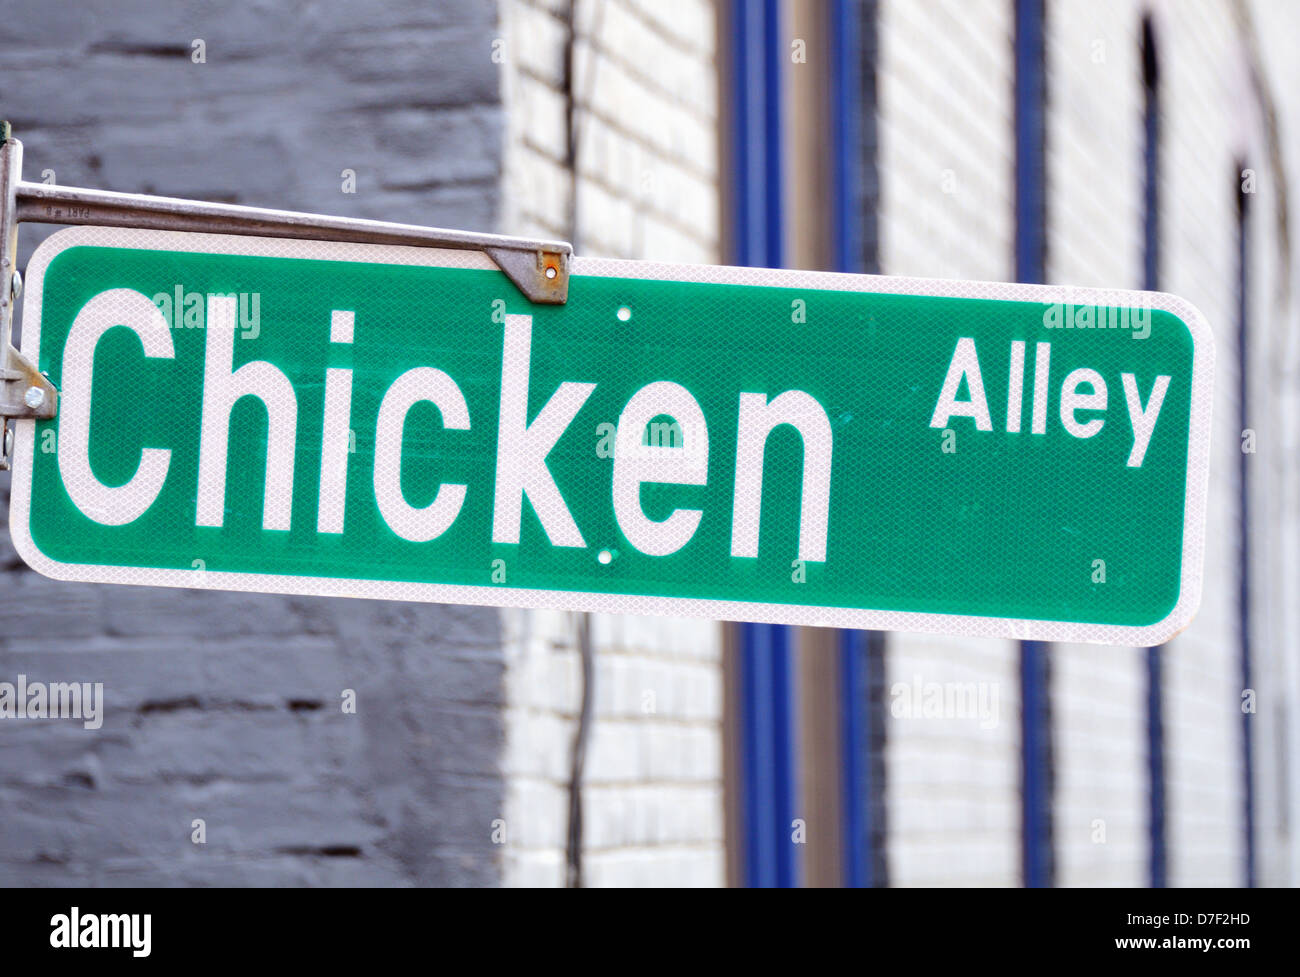 Street sign reading 'Chicken Alley' - Stock Image